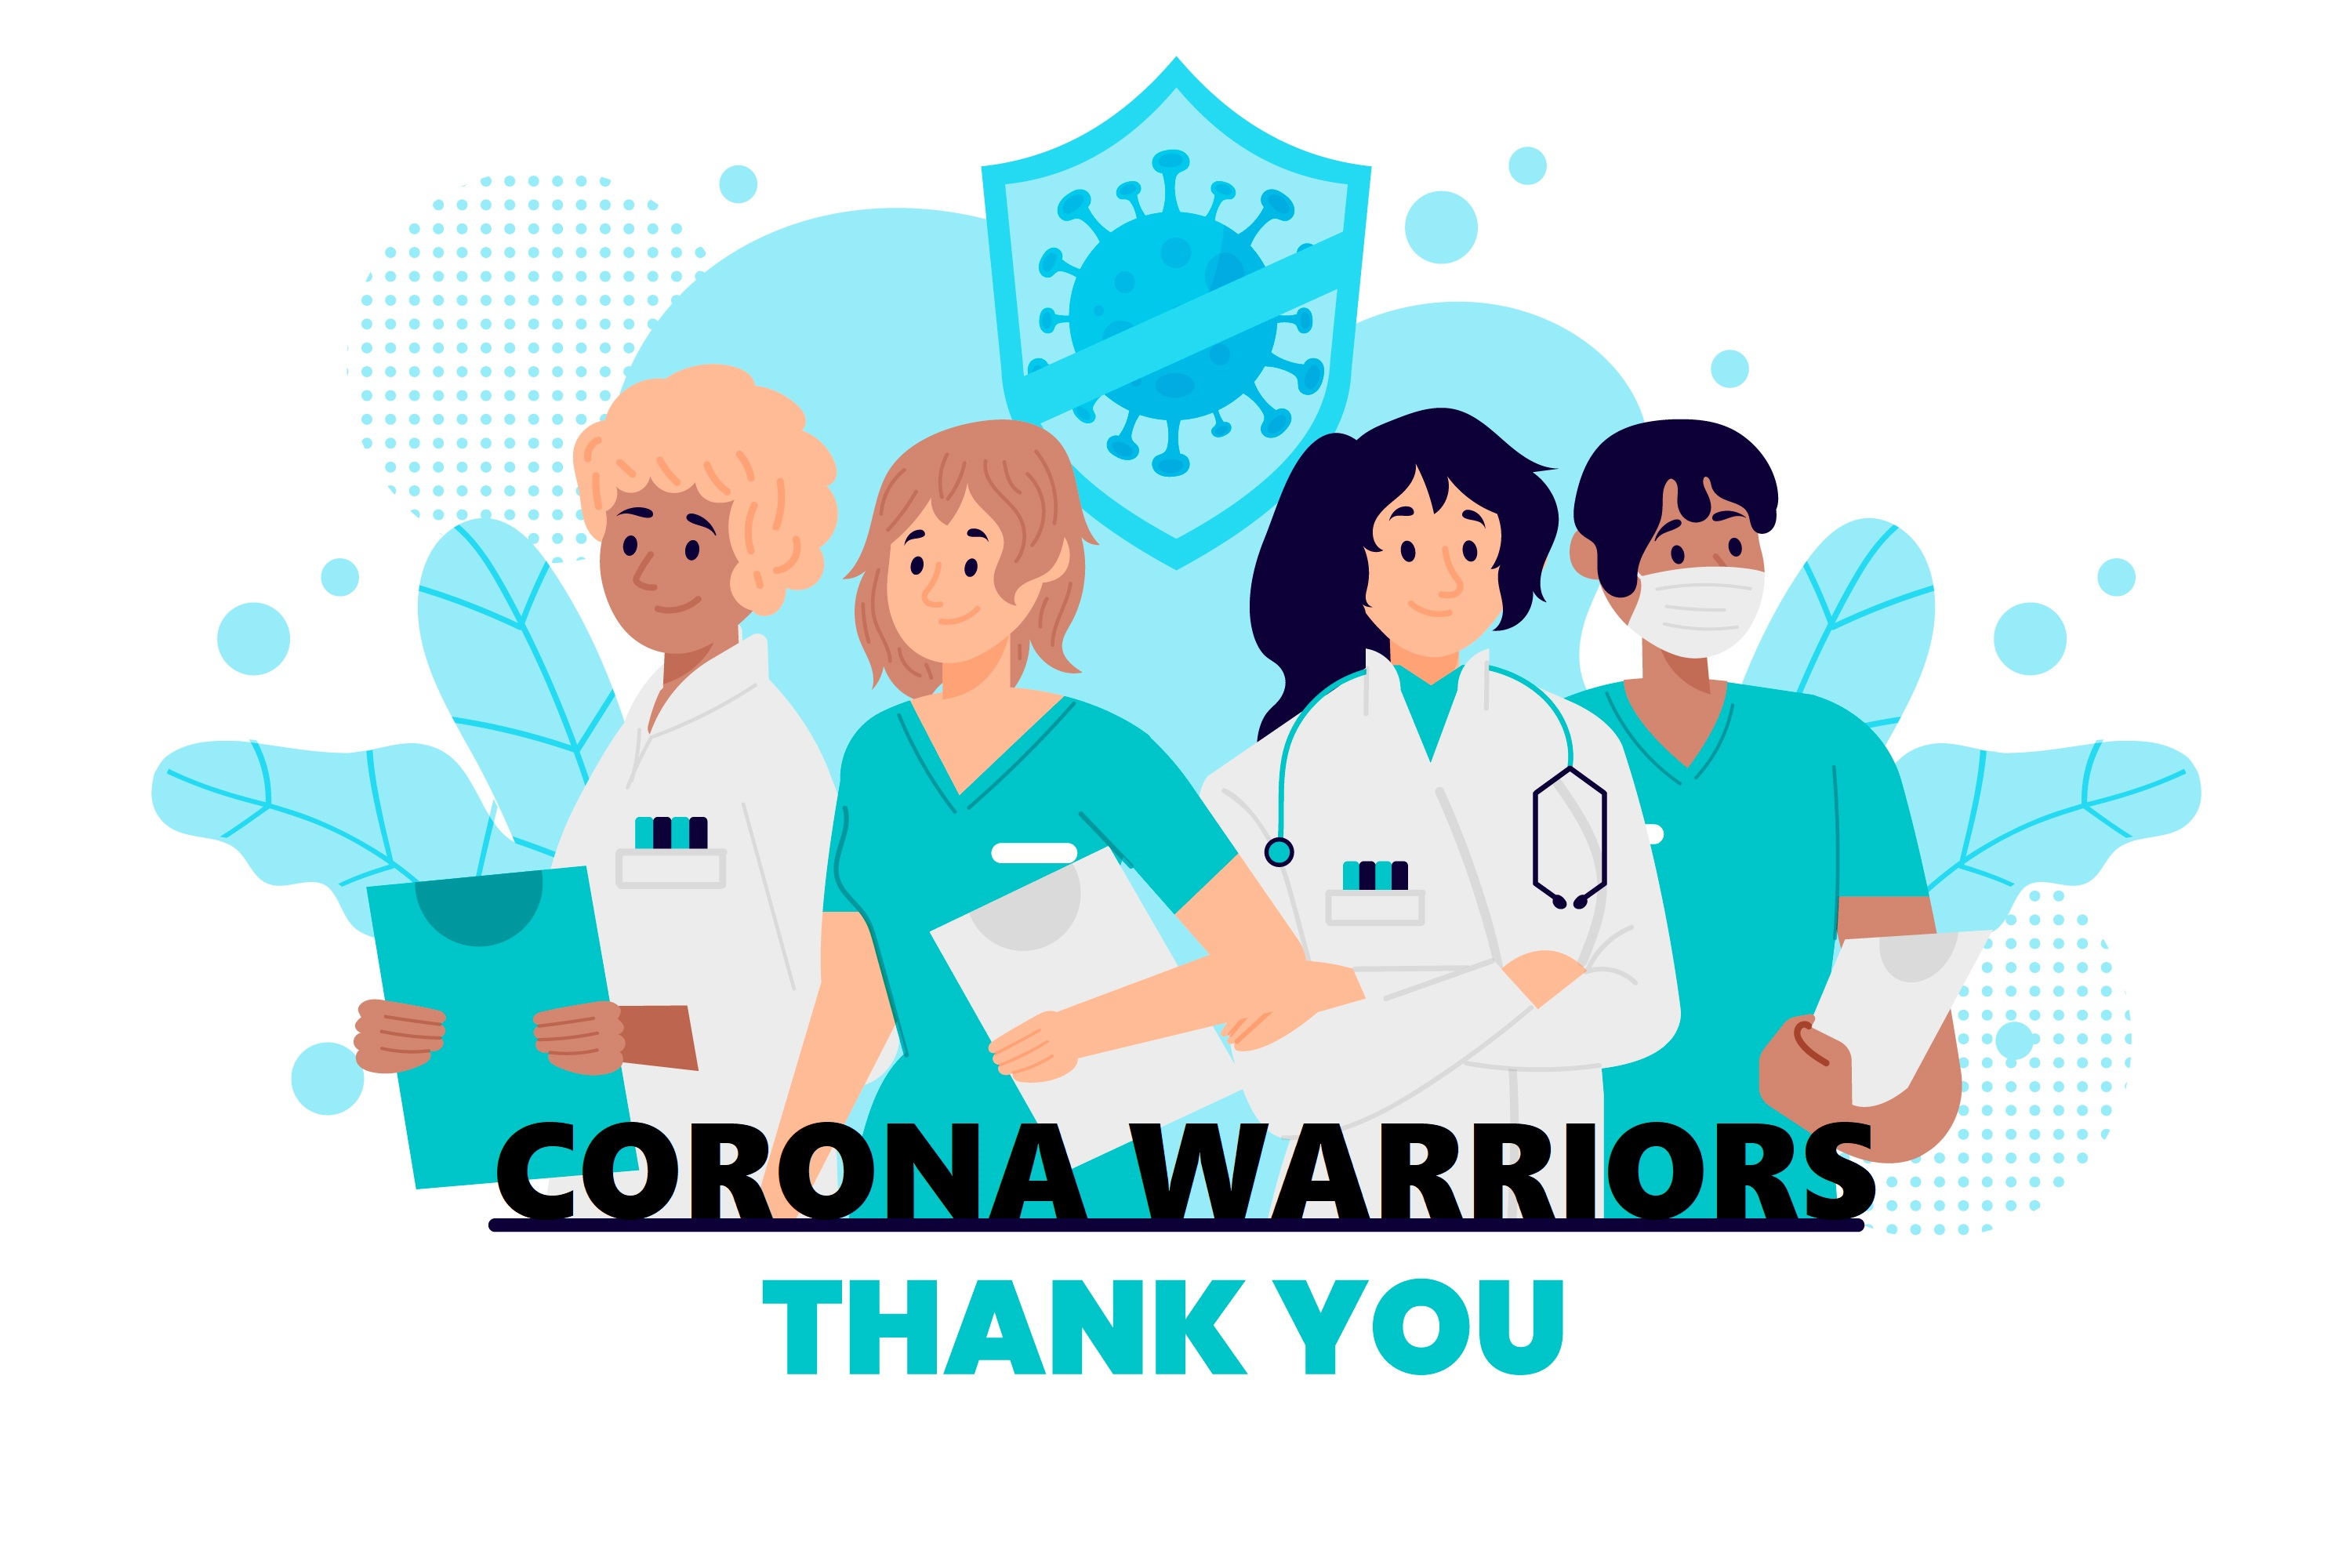 As a Corona Warrior, Your Health and Well-Being Are Key